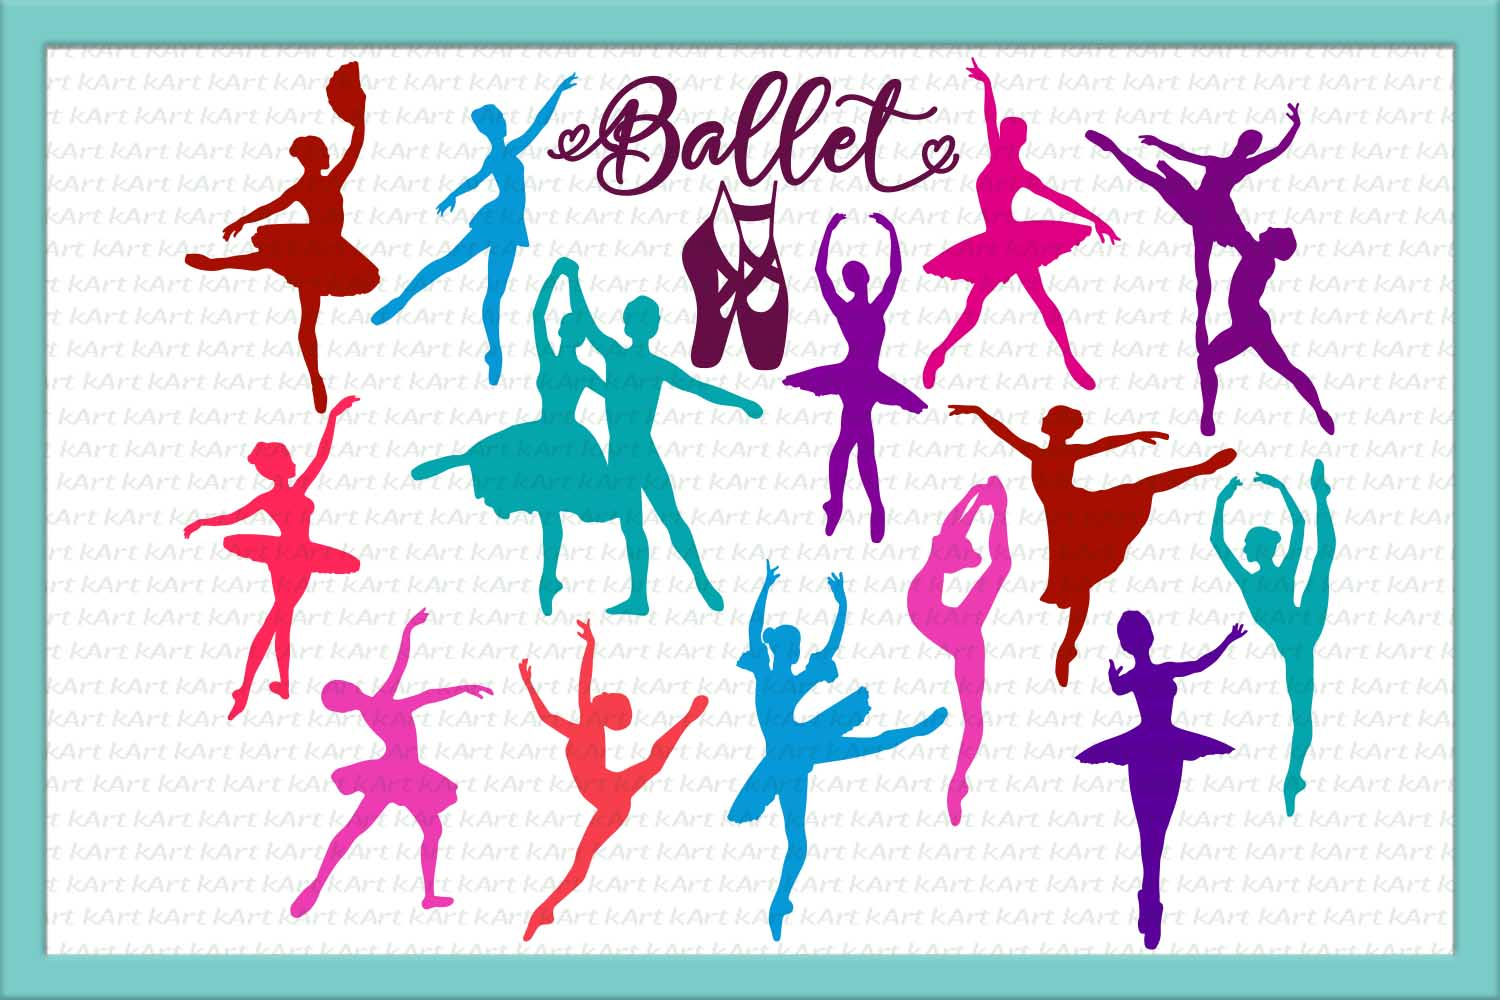 Download Free Ballet Dancer Dancers Ballerina Ballet Shoes Dance for Cricut Explore, Silhouette and other cutting machines.